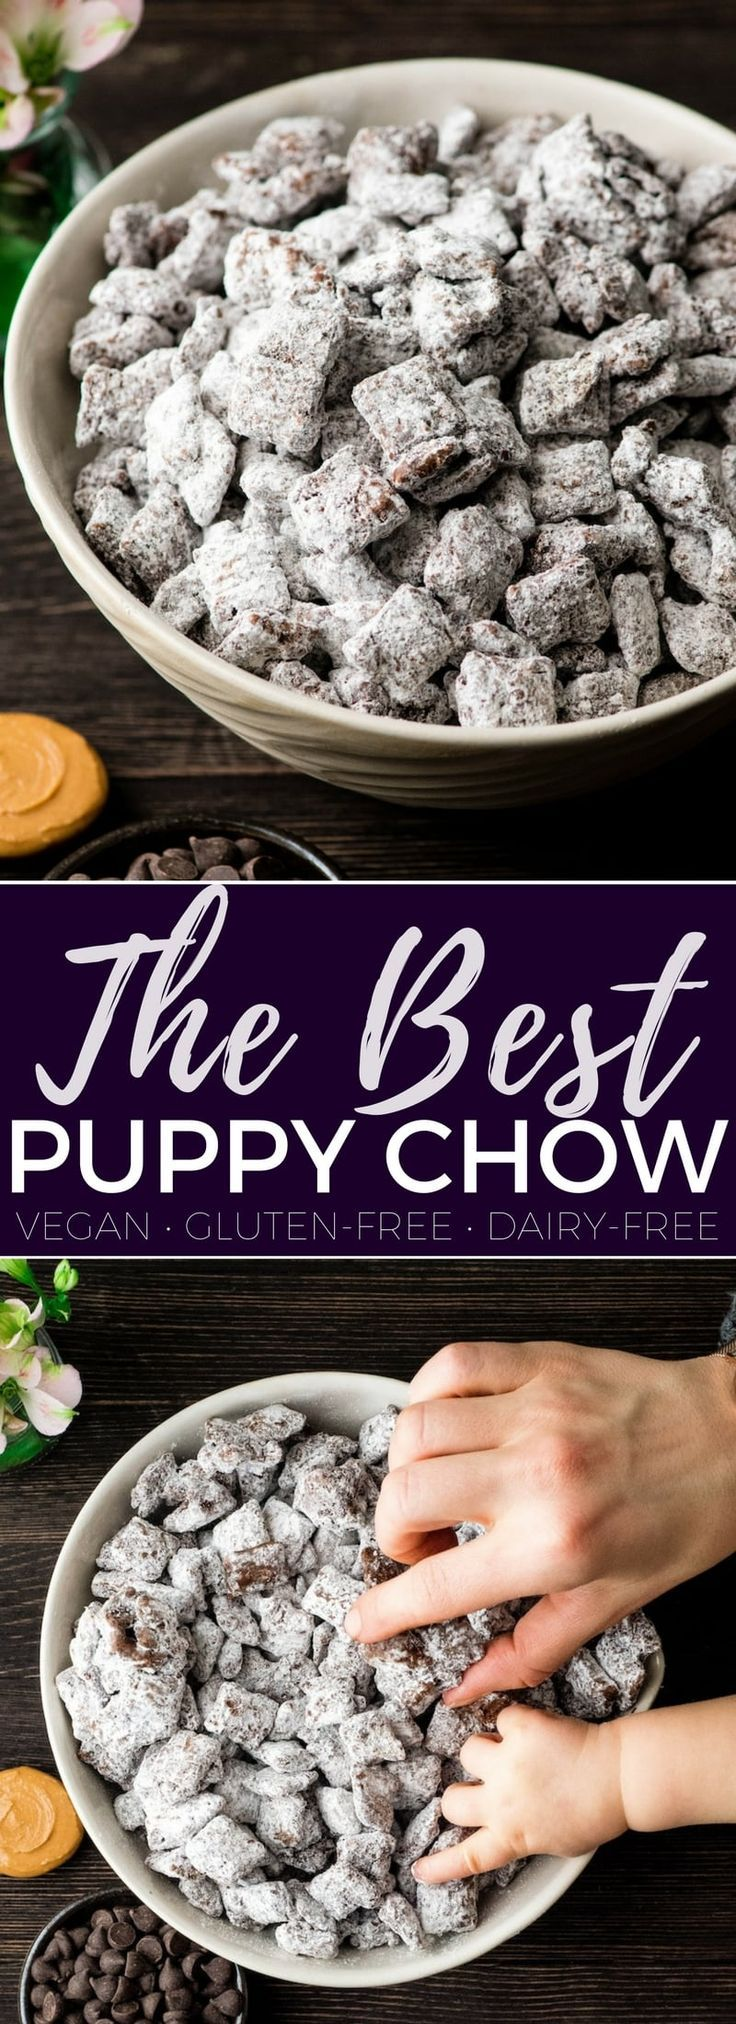 The Best Puppy Chow Recipe EVER! Only 4 ingredients and a few minutes results in an irresistible dessert loaded with chocolate and peanut butter! The perfect sweet treat to feed a crowd! AKA: Muddy Buddies! Plus, it's gluten-free, dairy-free, and vegan! #puppychow #muddybuddies #dessert #glutenfree #dairyfree #vegan #chocolate #peanutbutter